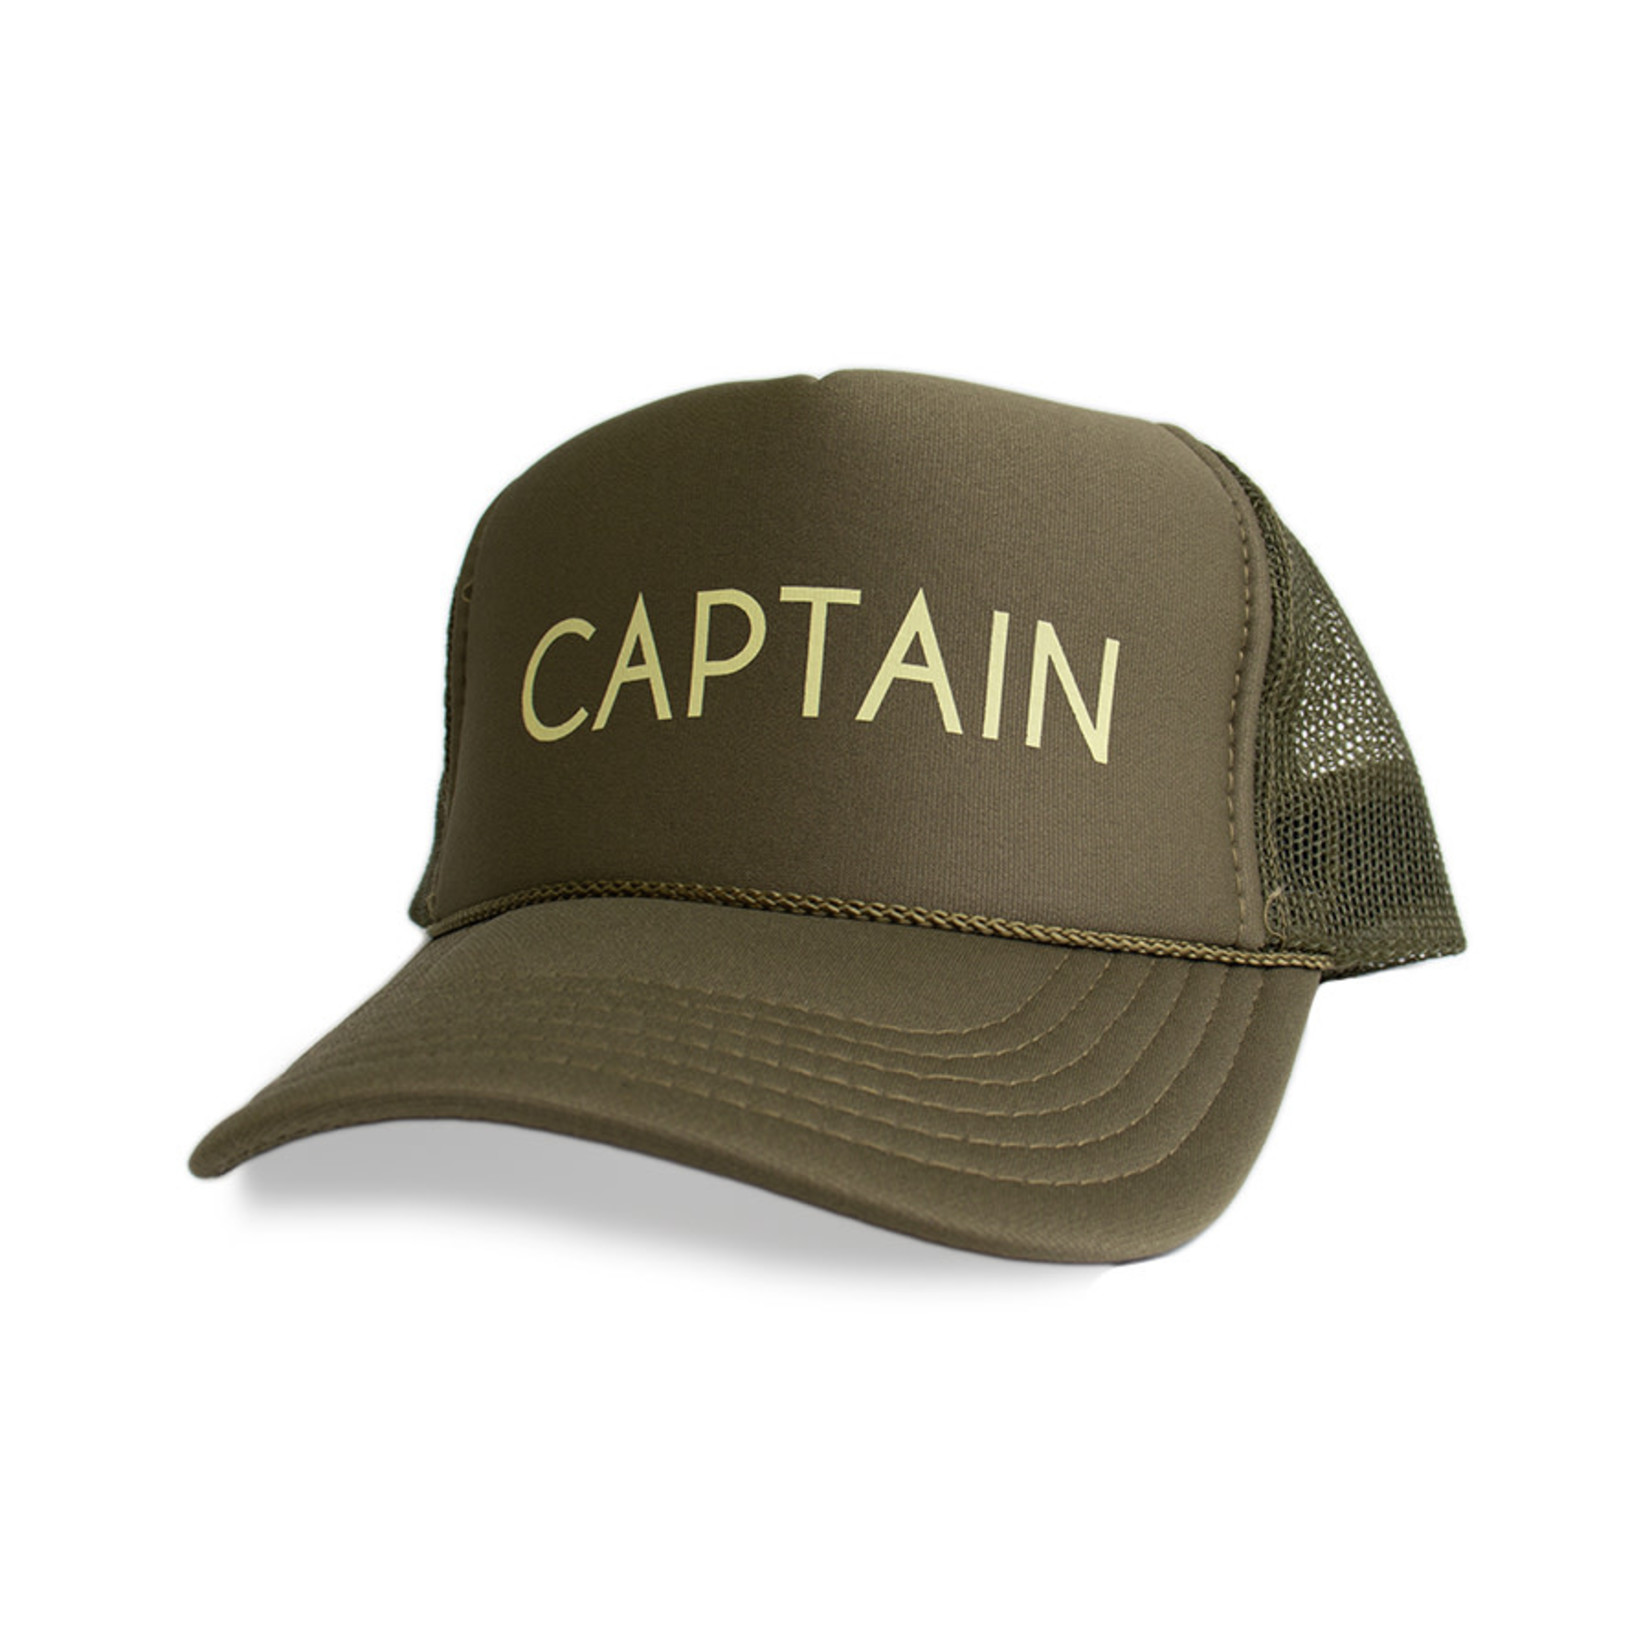 Mothersun and the Captain The Captain Trucker Hat